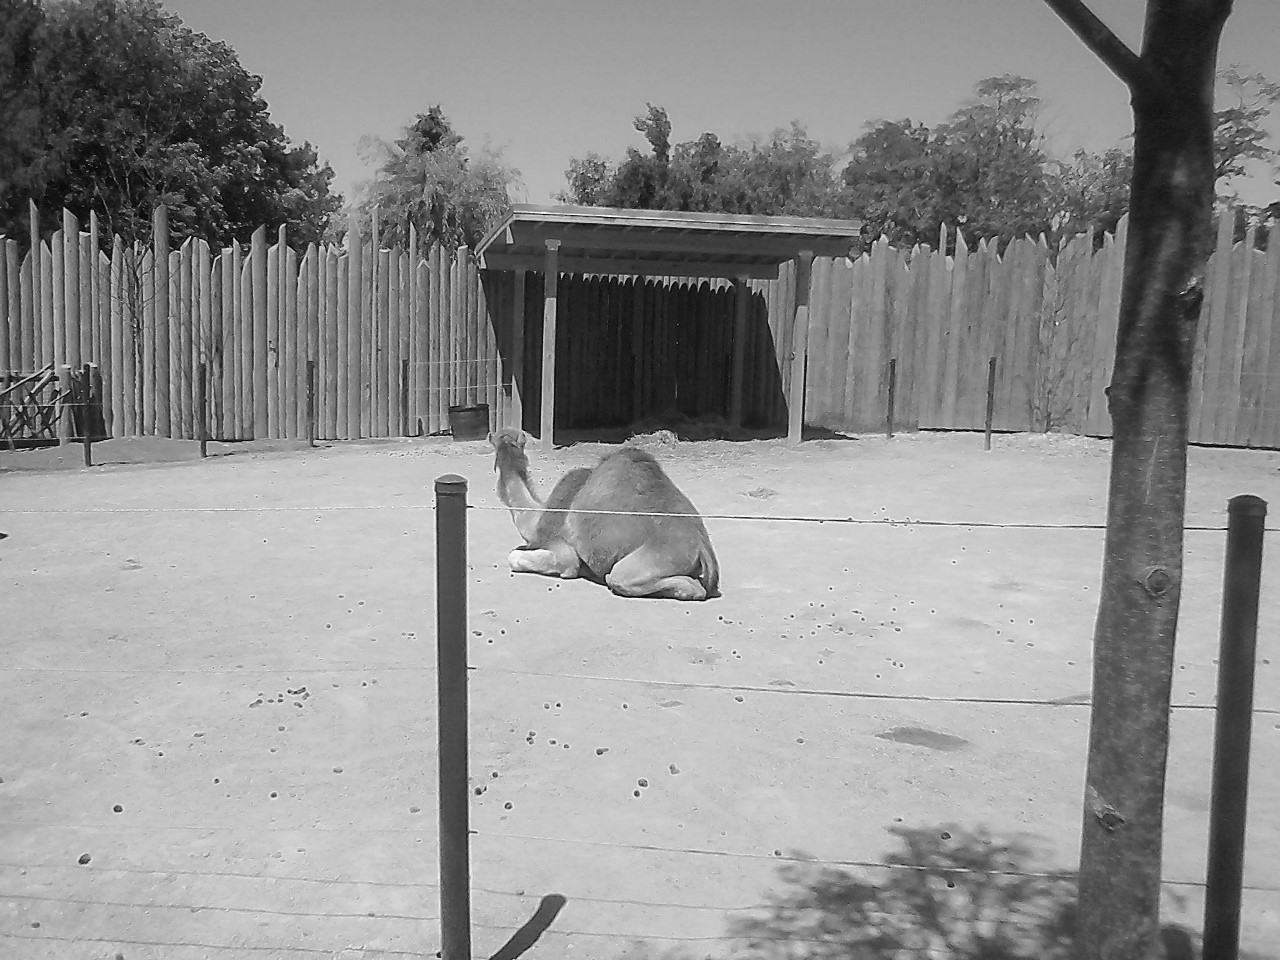 Columbus Zoo BW 5-31-2014 11-53-29 AM